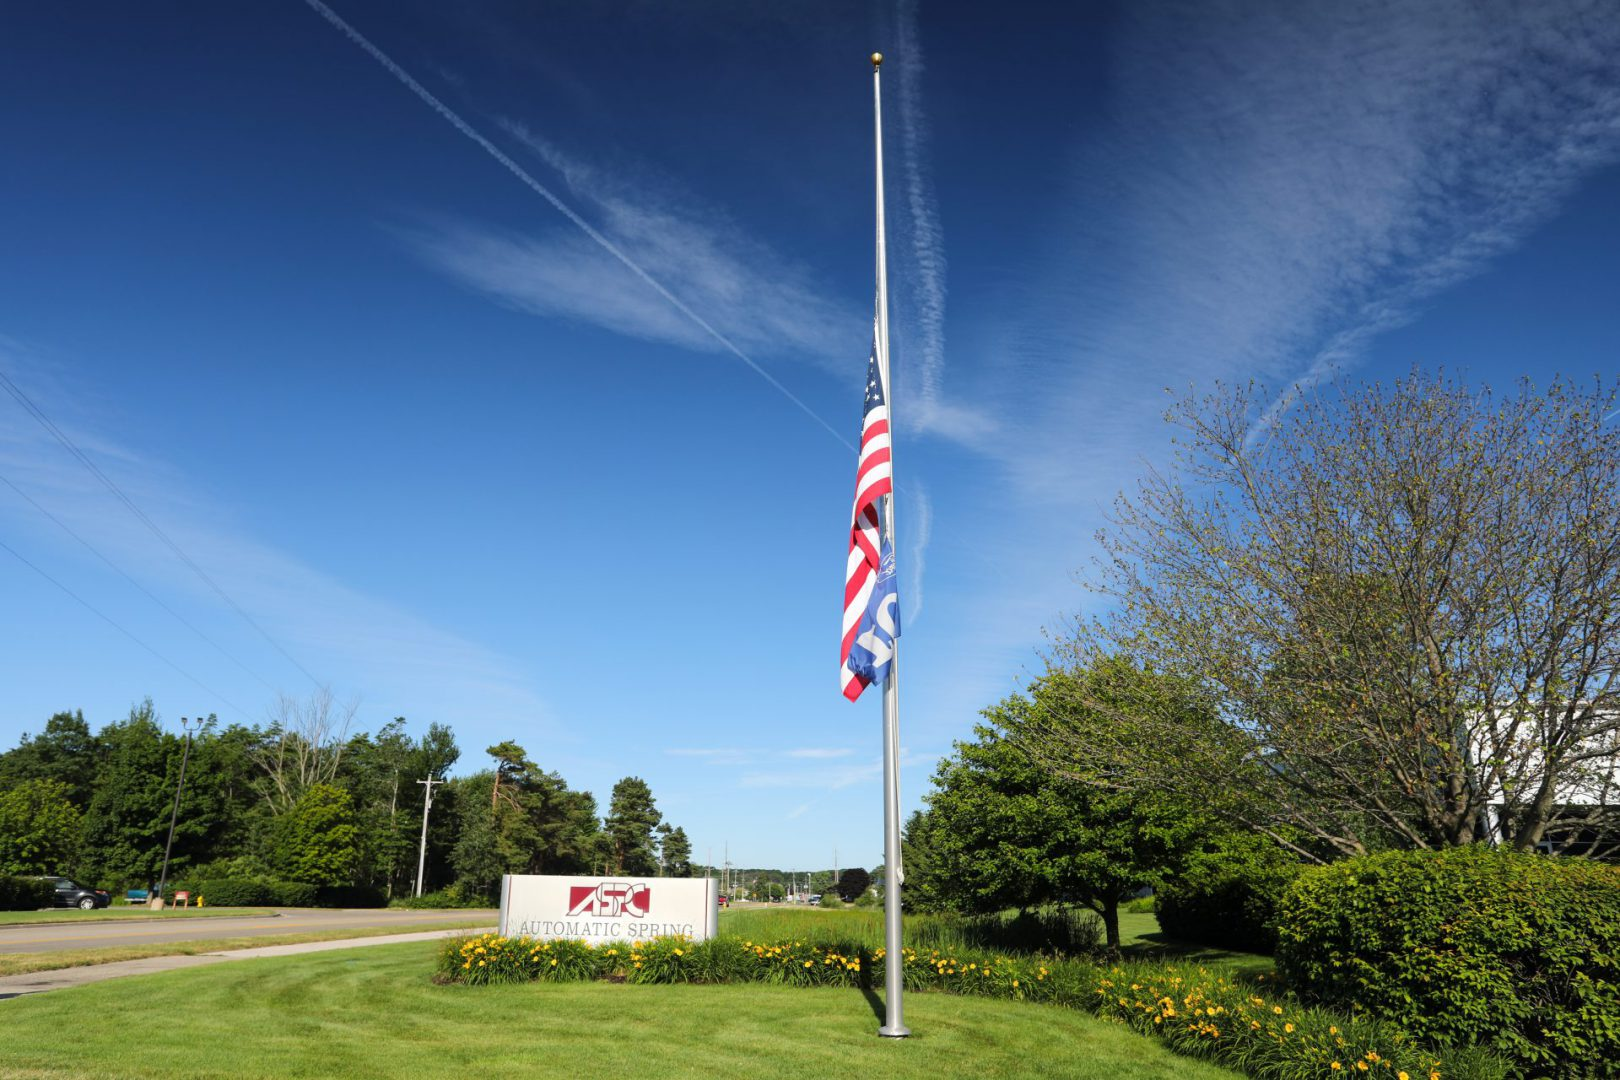 flag pole and sign